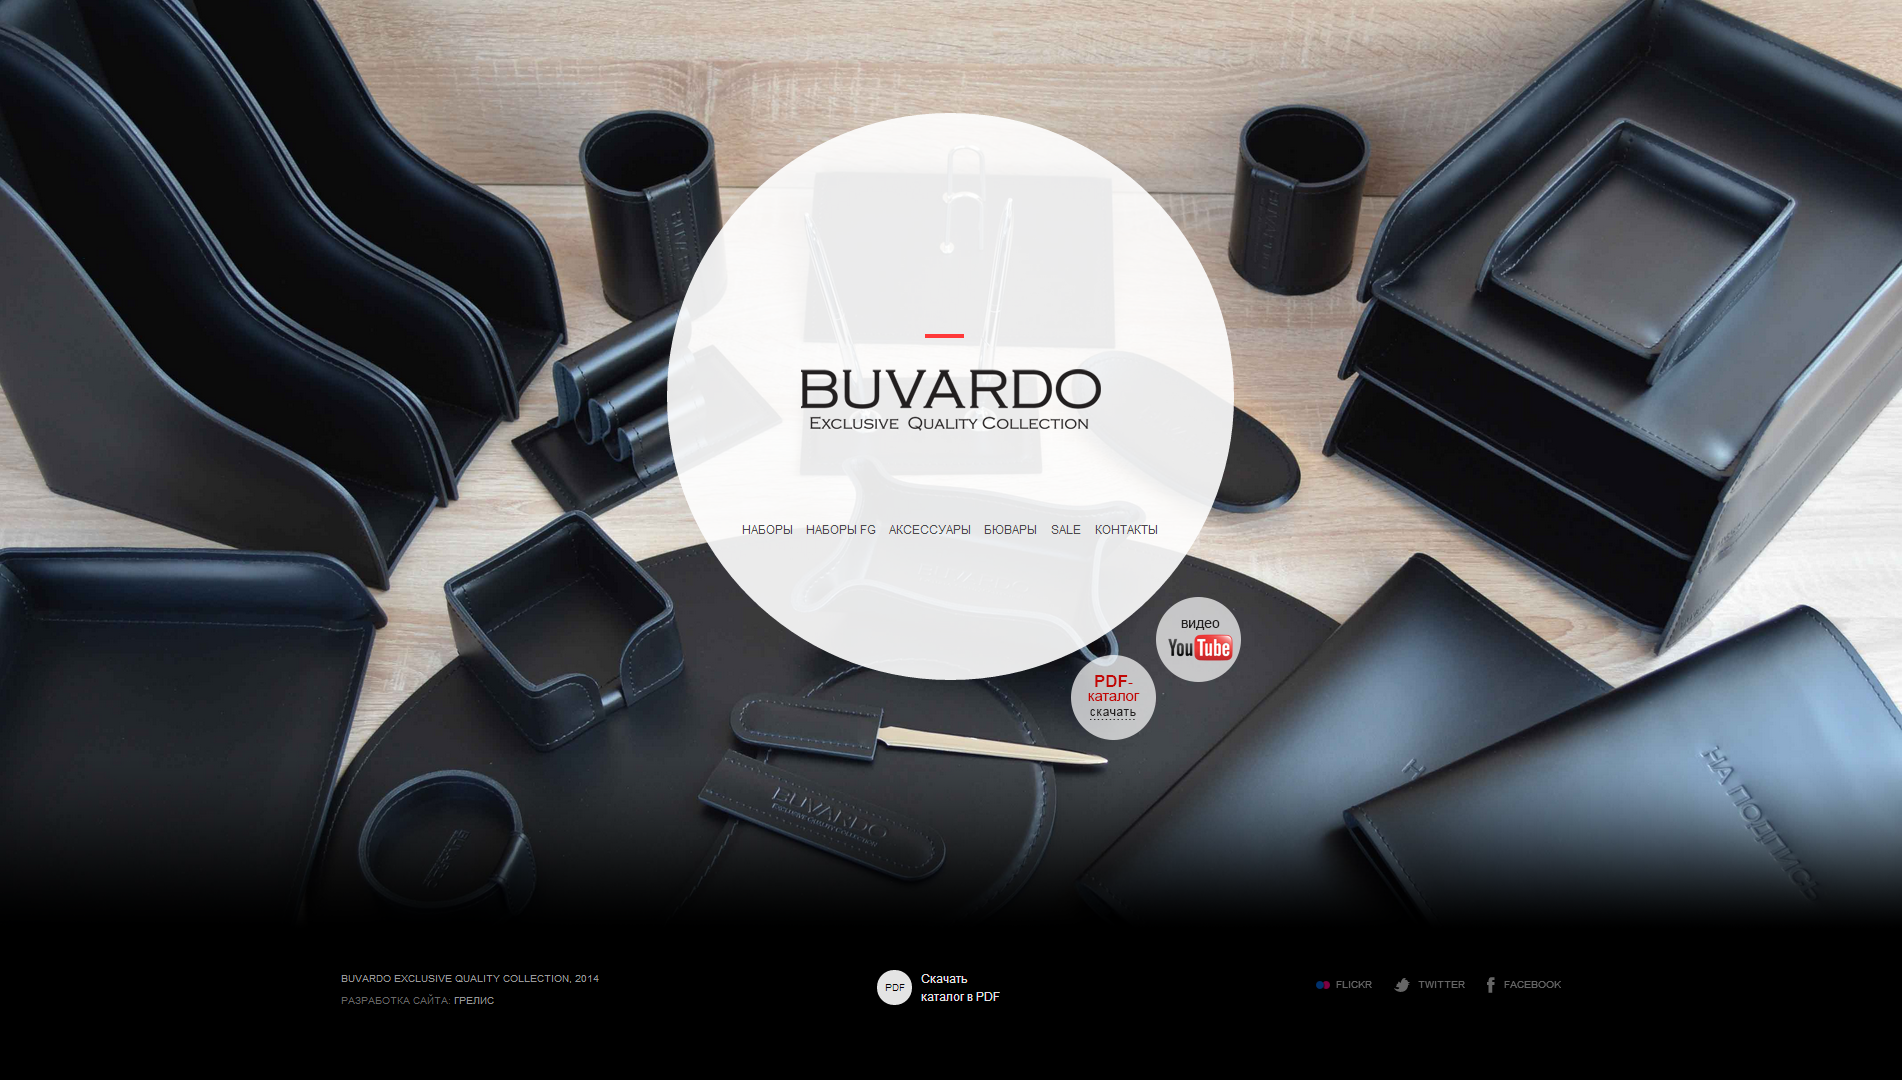 BUVARDO EXCLUSIVE QUALITY COLLECTION